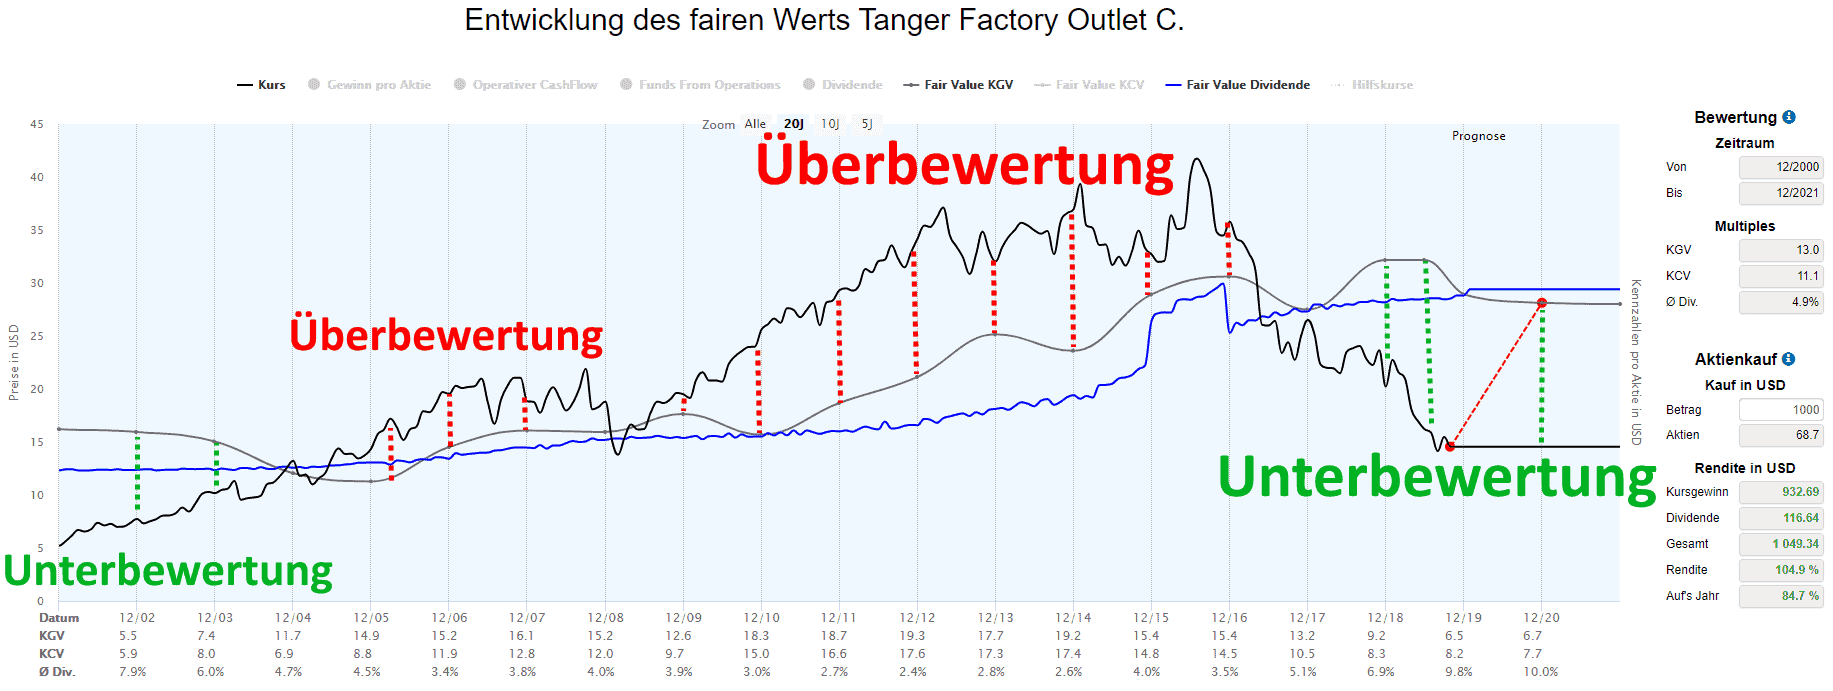 Tanger Factory Outlet Aktie Bewertung